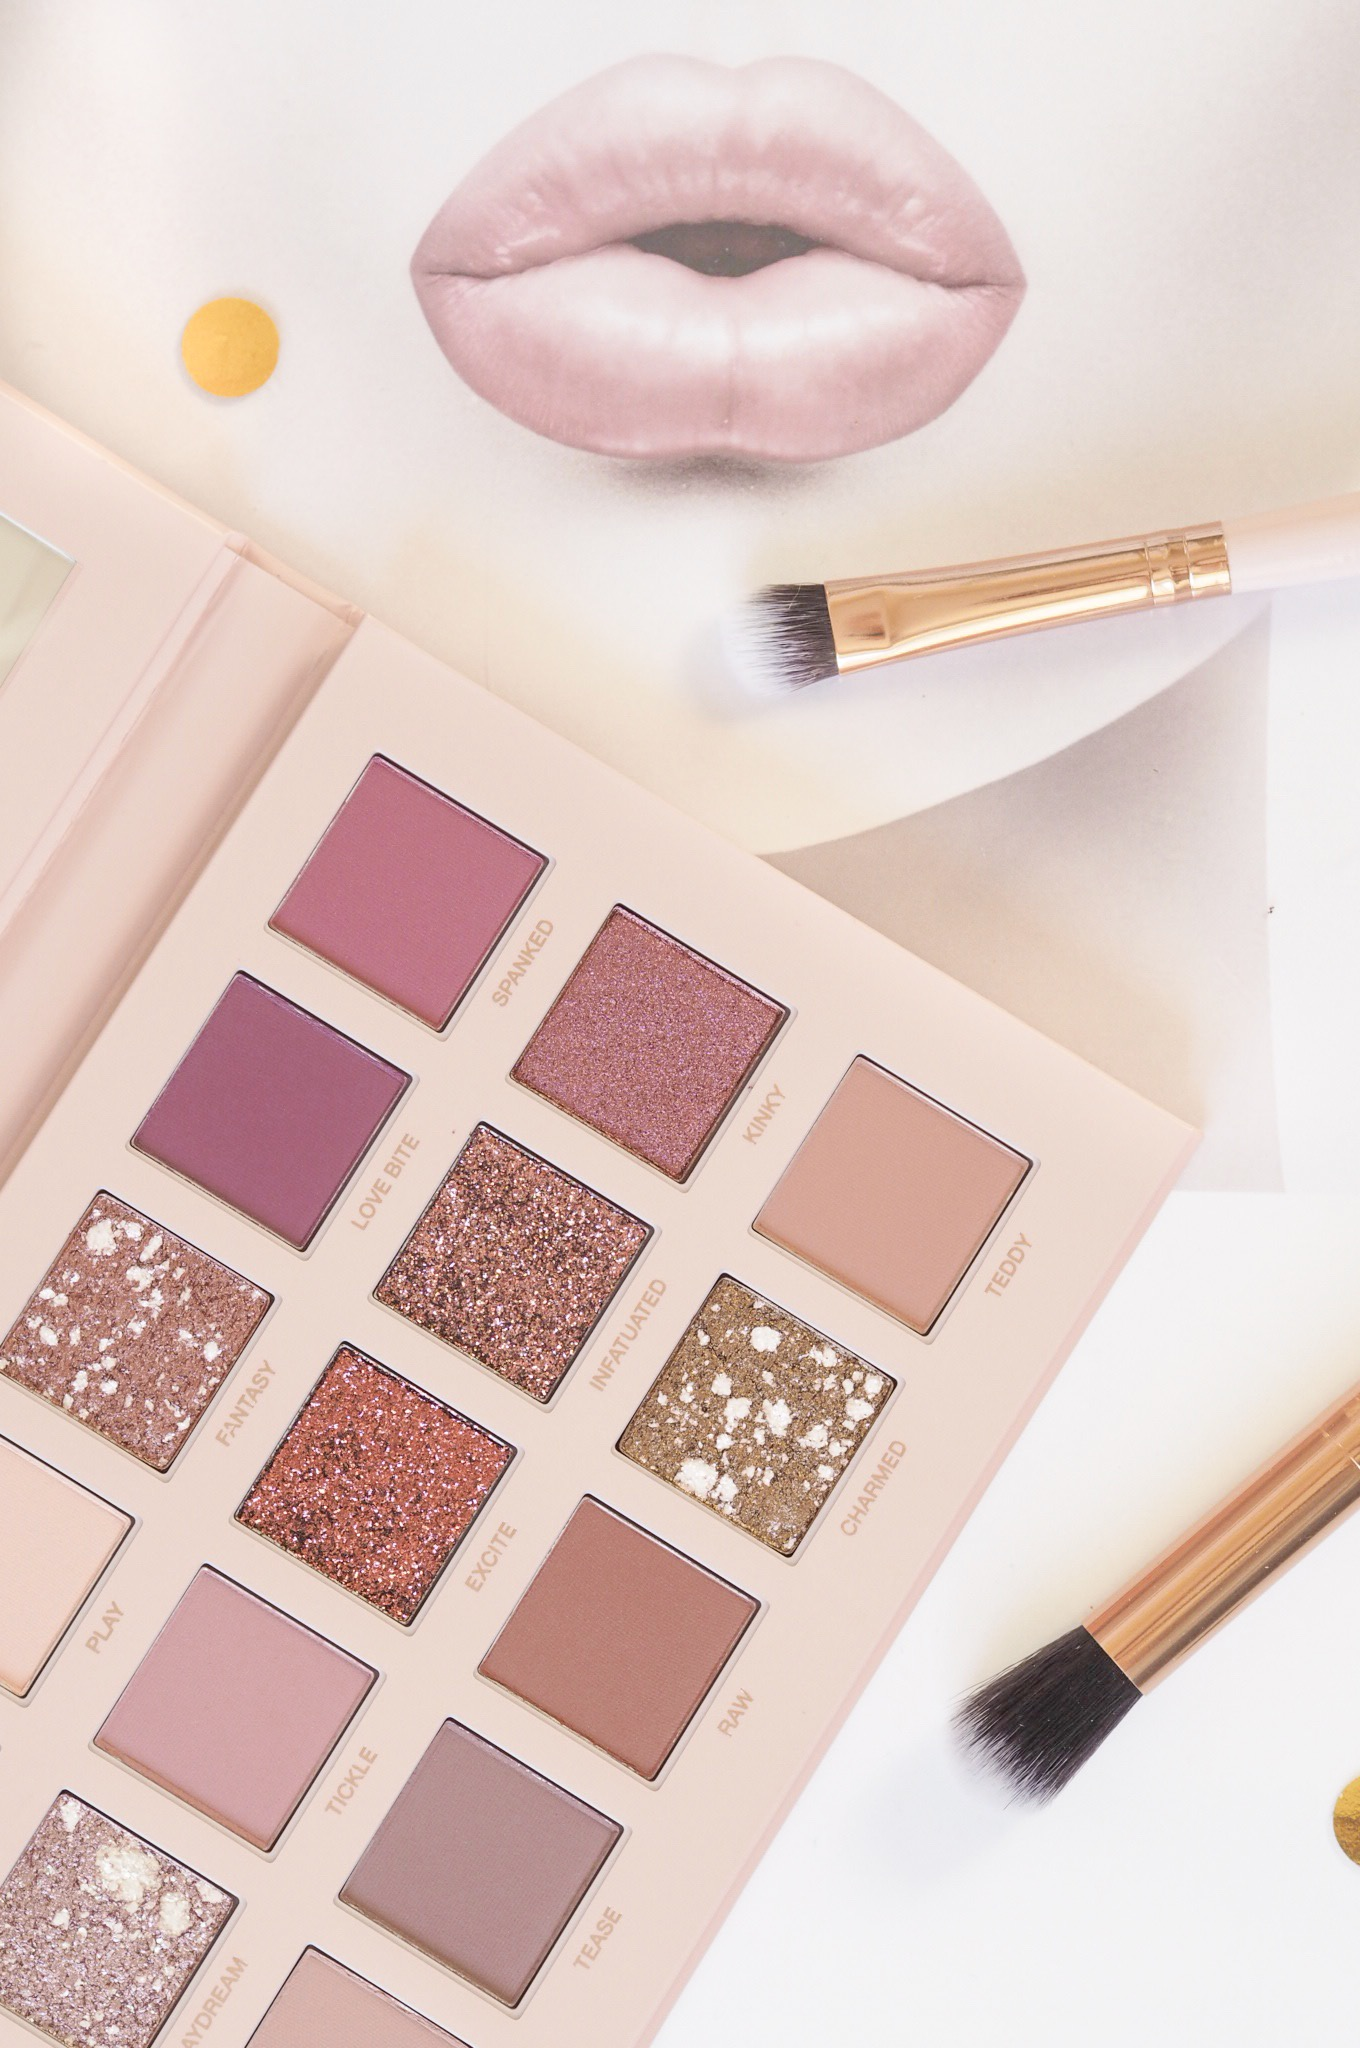 Huda Beauty New Nude Review